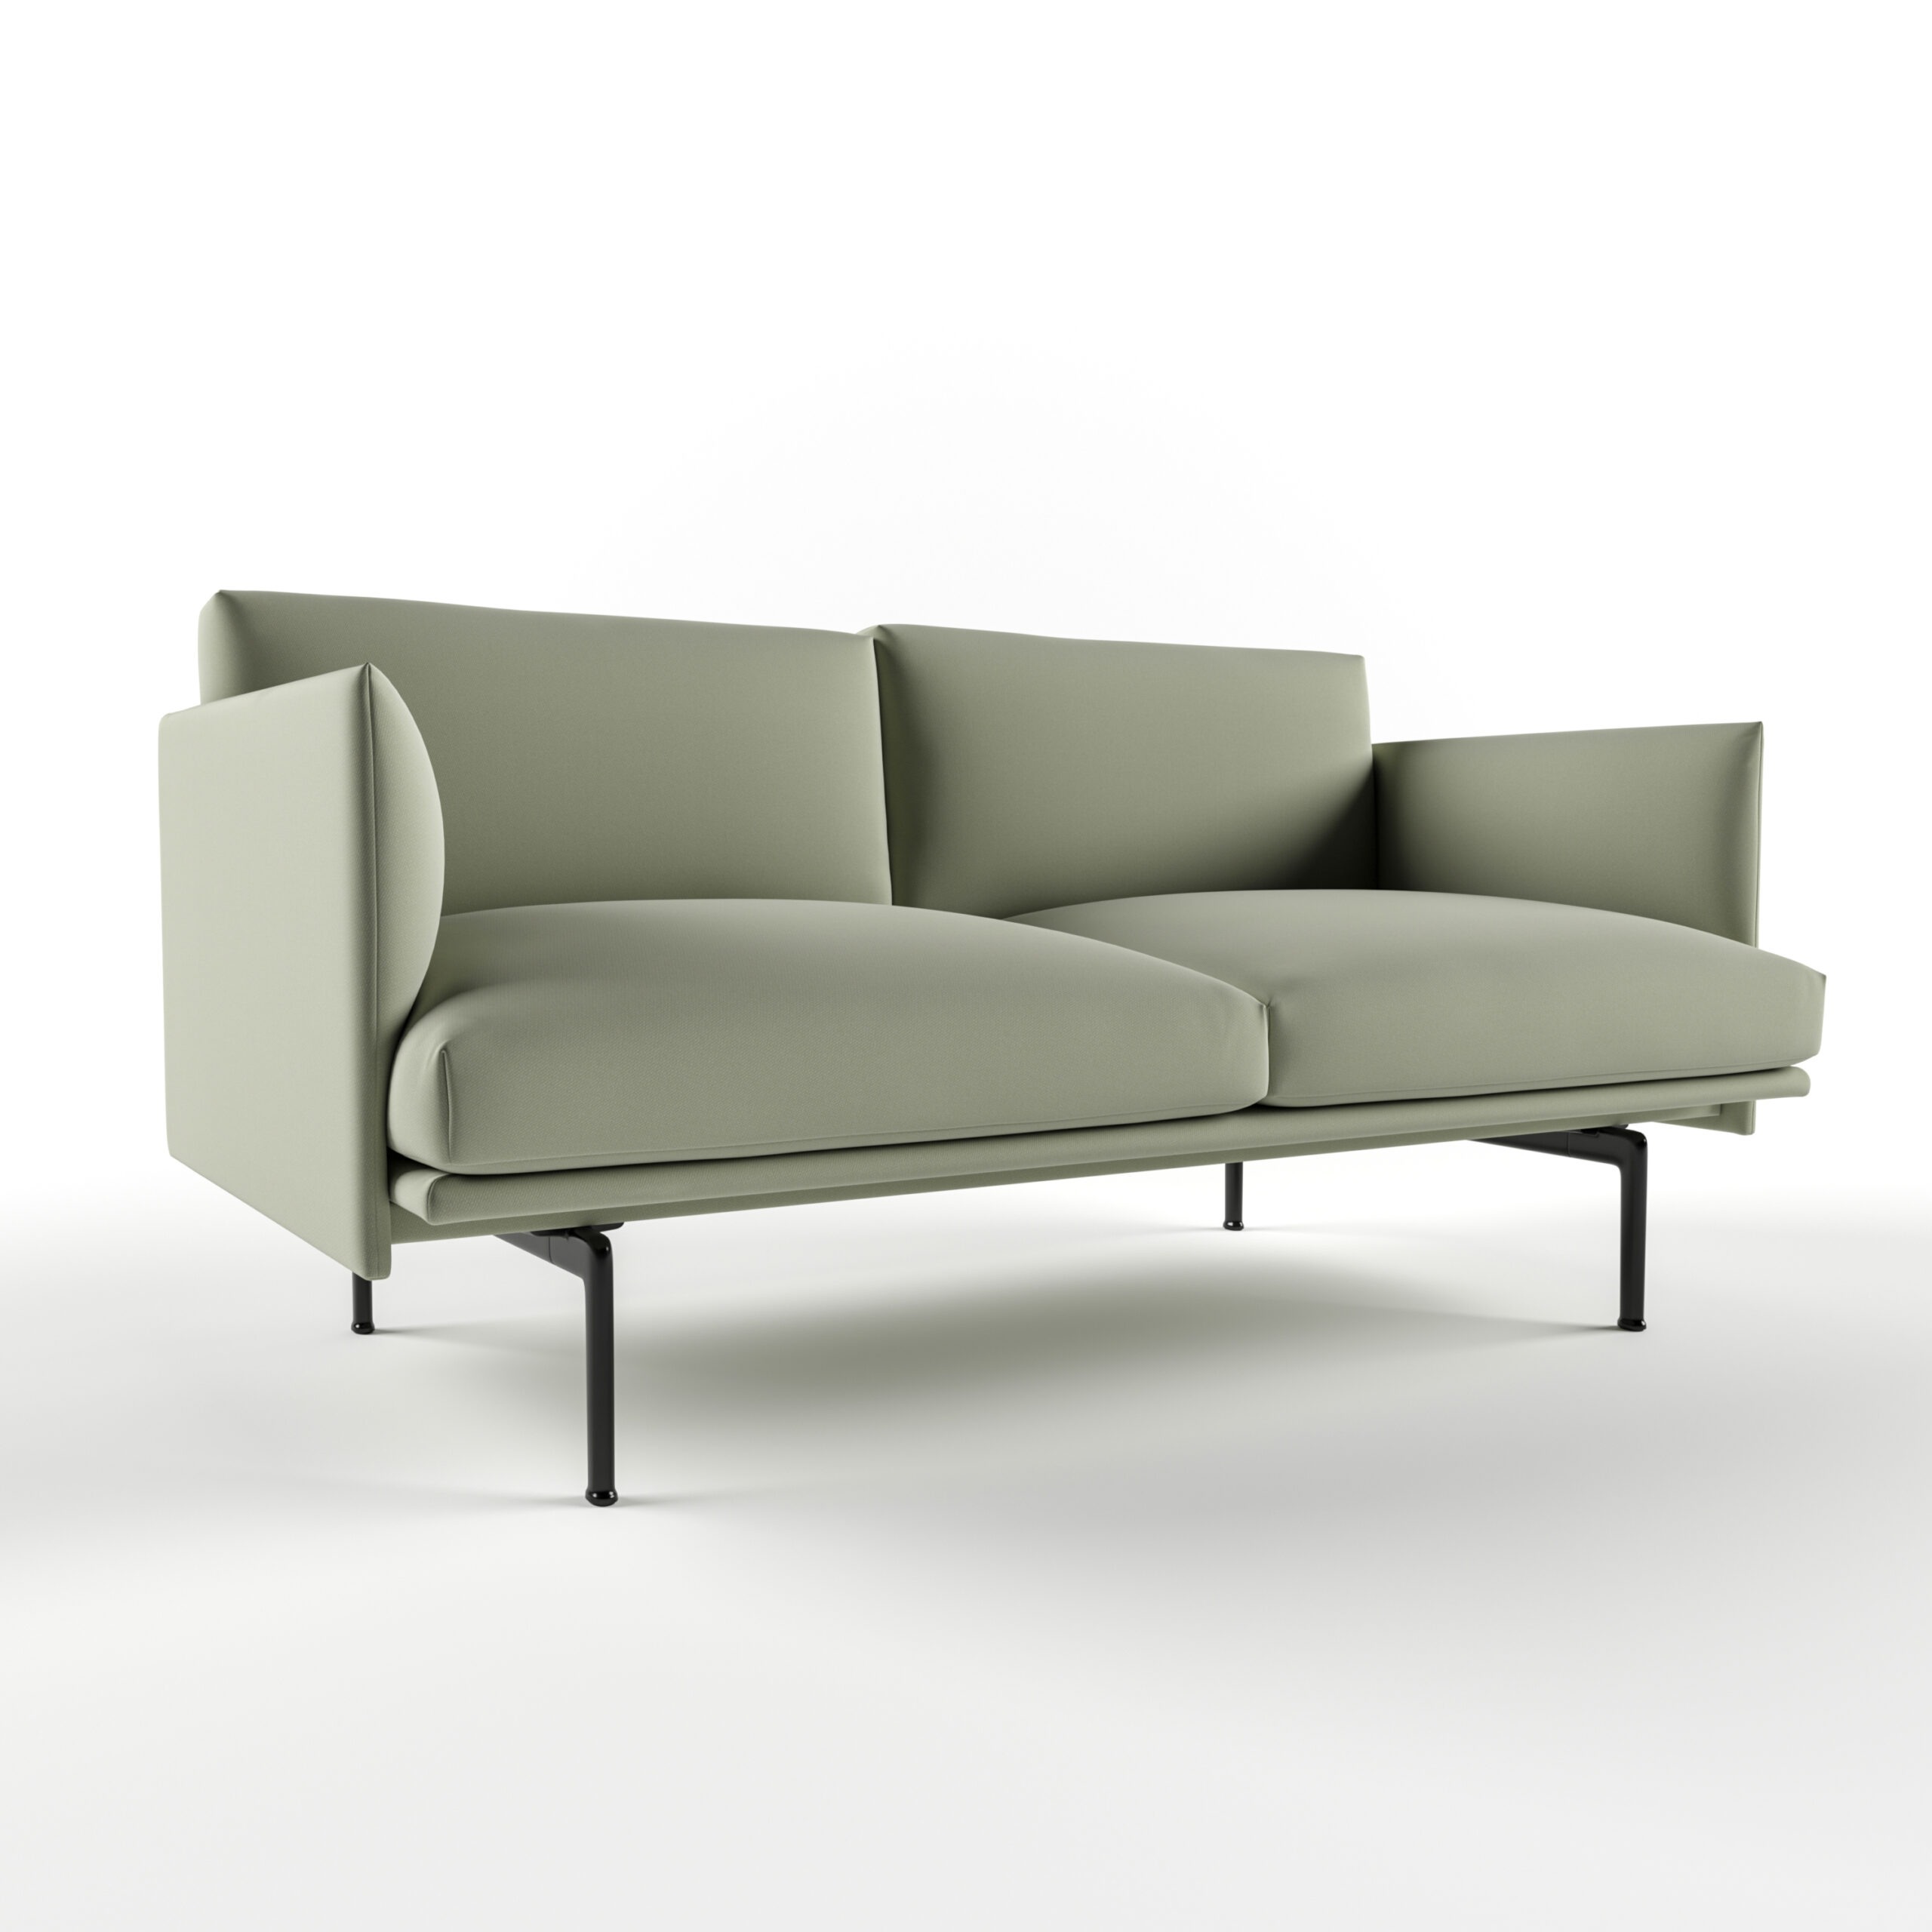 Full Size of Muuto Sofa Furniture Uk Sofabord Cecilie Manz Connect Outline Chaise Longue Sale Oslo 2 Seater Leather Modular 3 1/2 Rest Umriss 3d Modell Turbosquid 1455862 Sofa Muuto Sofa